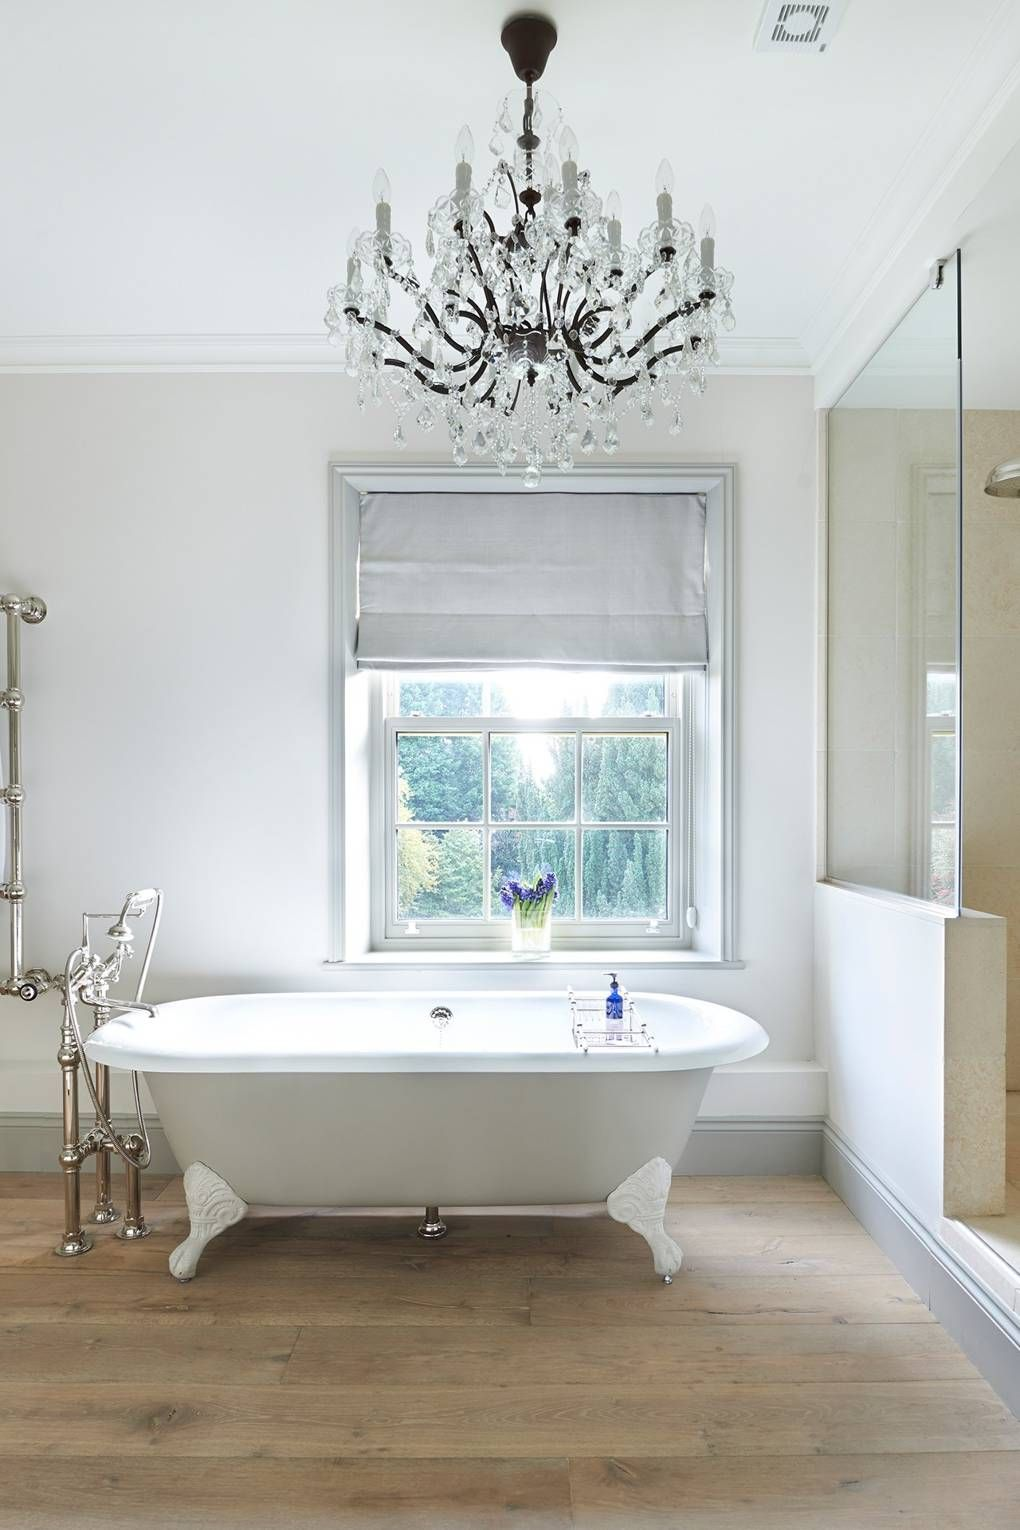 Free-Standing Tub from Drummonds | Ev aksesuar in 2018 | Pinterest ...